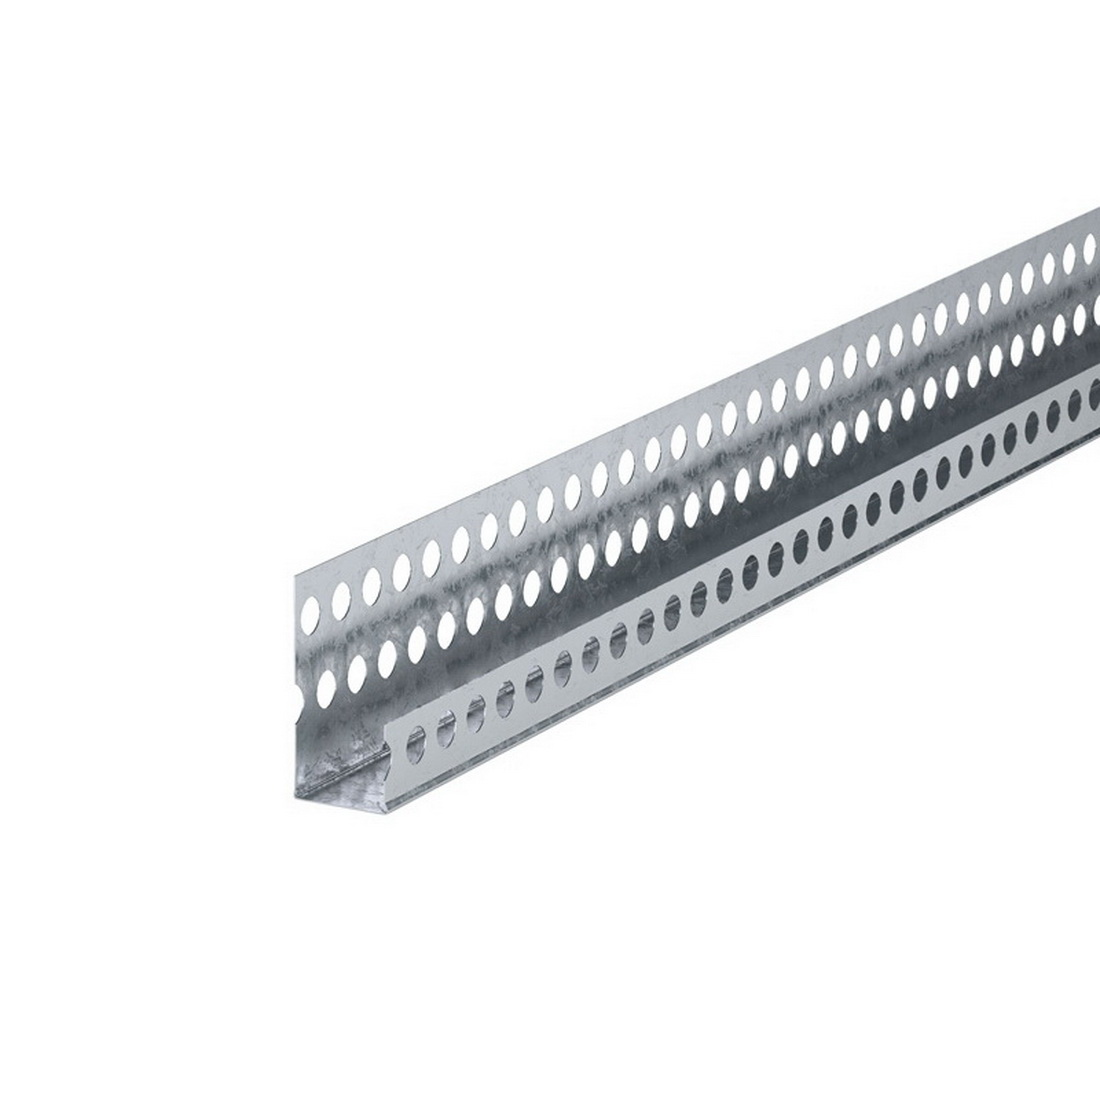 Rondo Stopping Plaster Casing Bead 13mm x 3000mm Galvanized Steel For P13